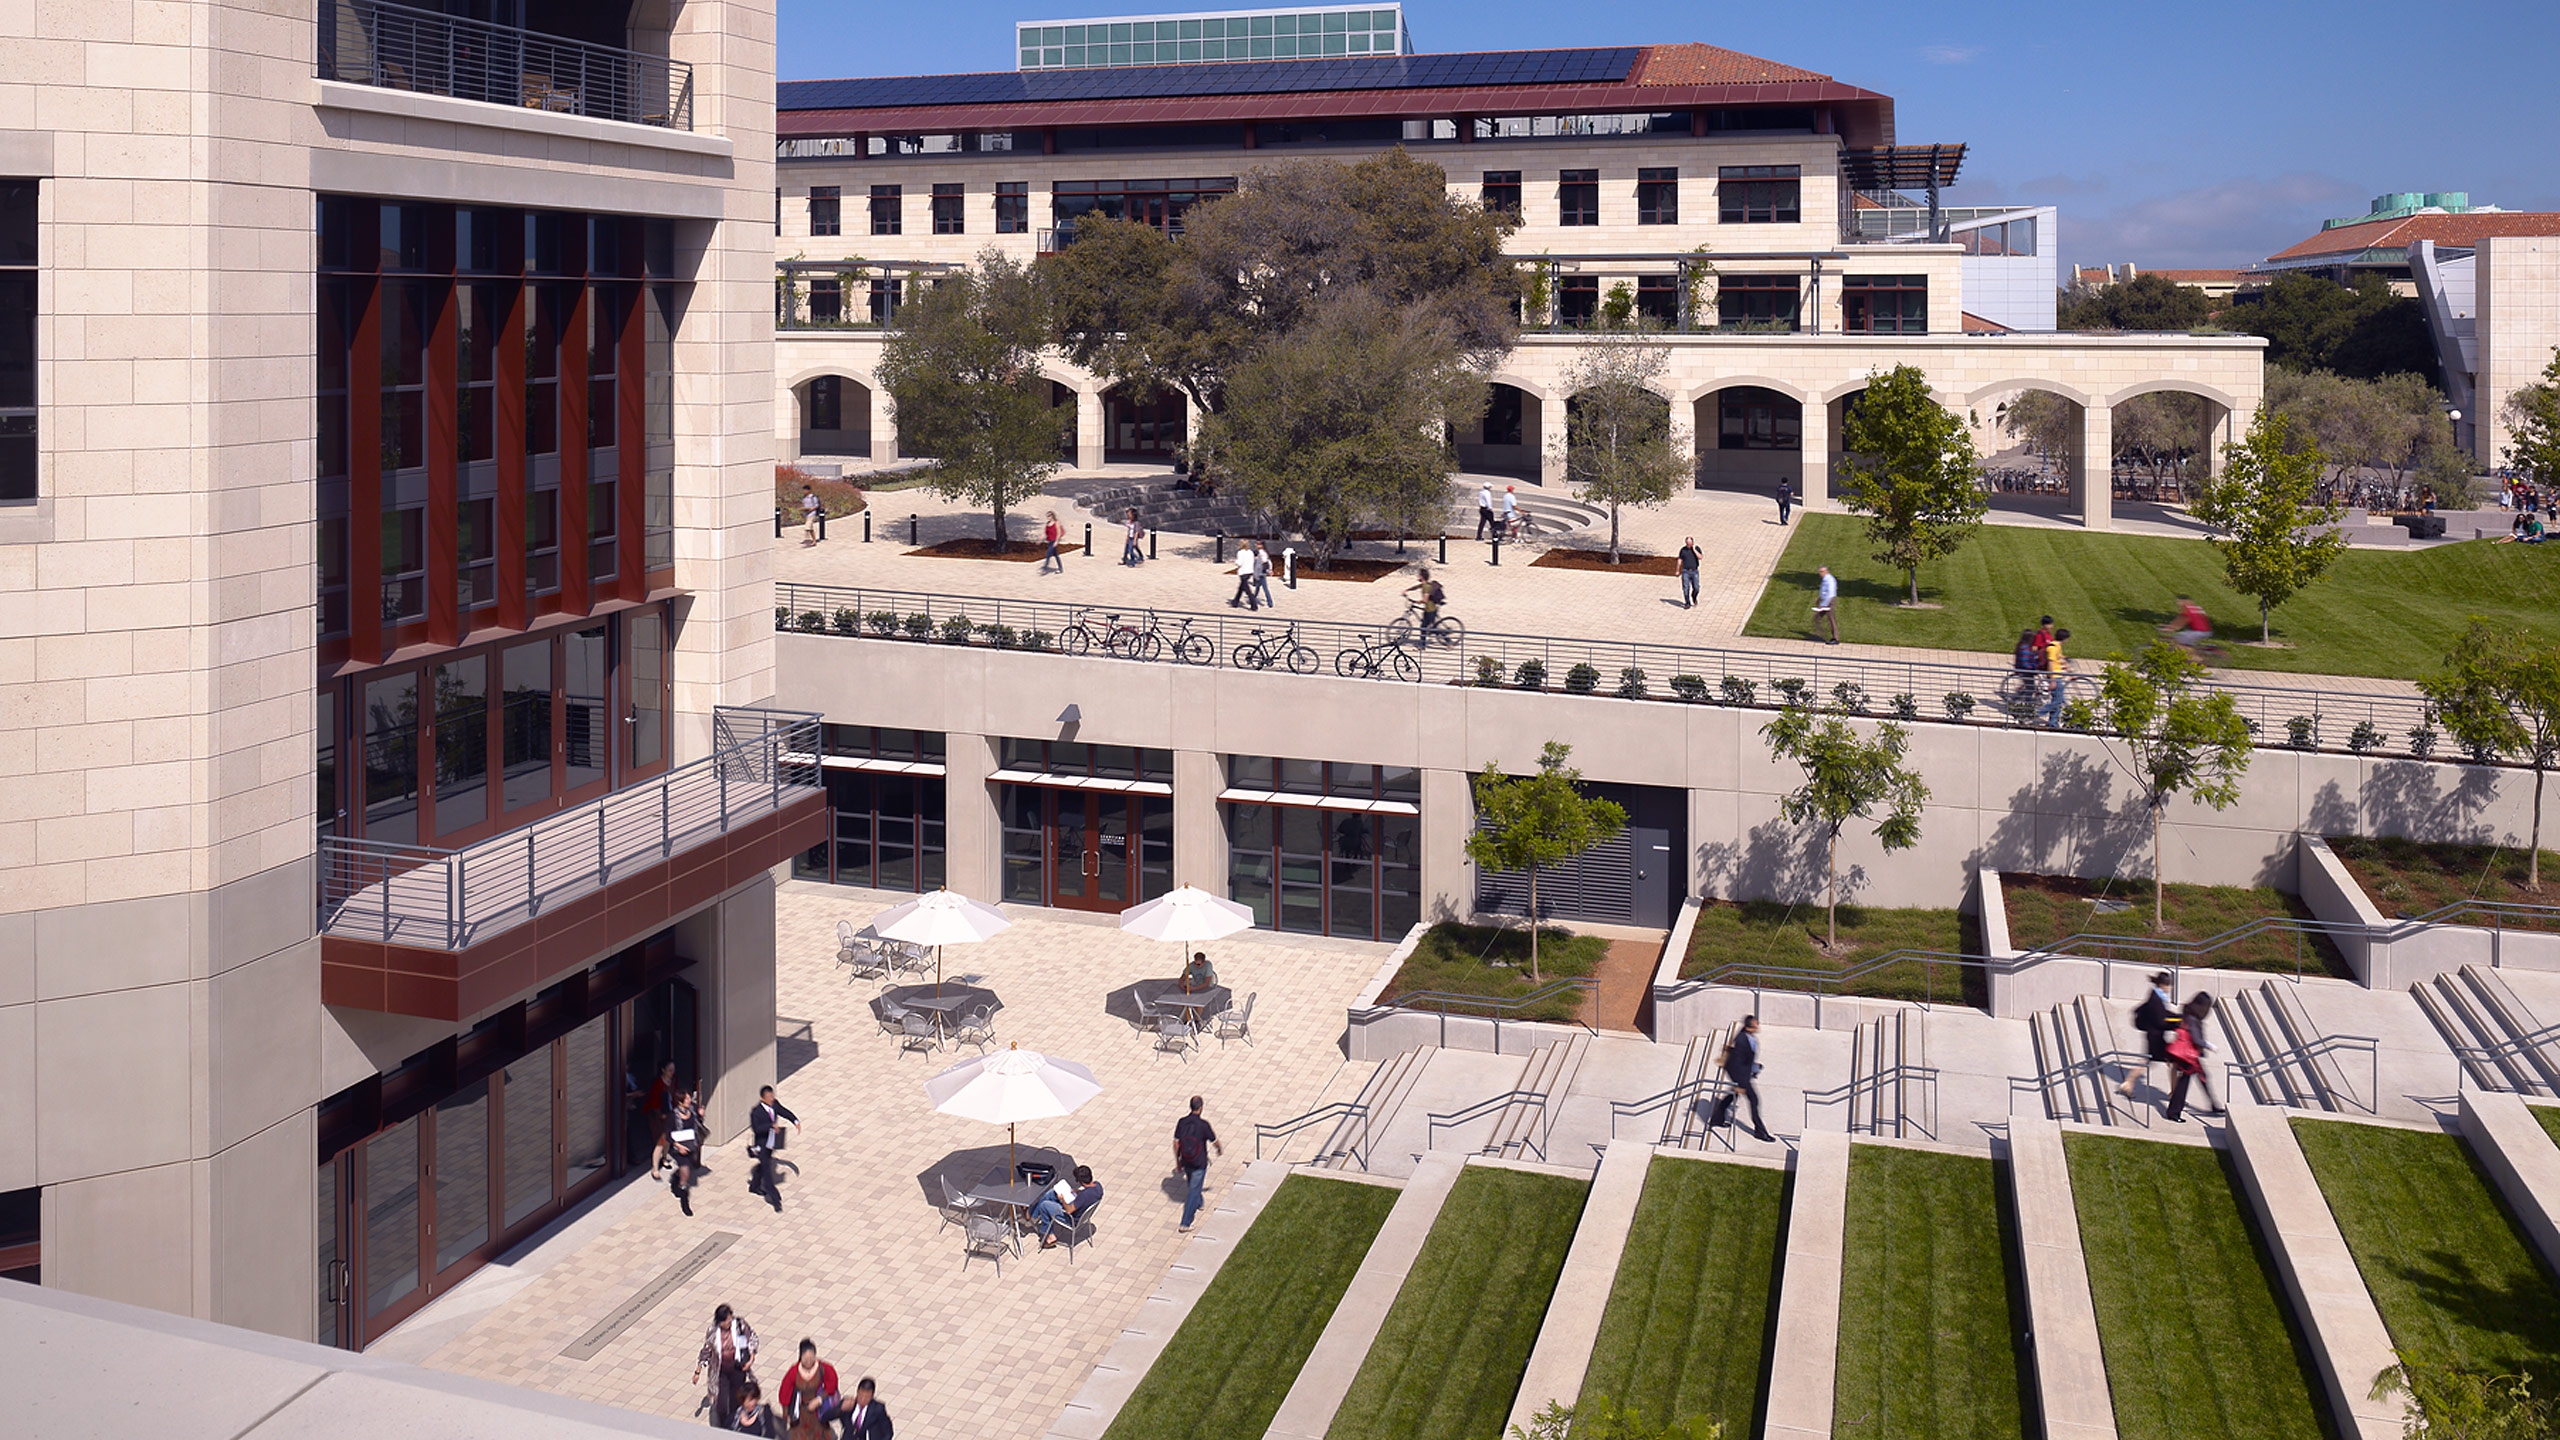 Jen-Hsun Huang Engineering Center – Stanford University / image 4